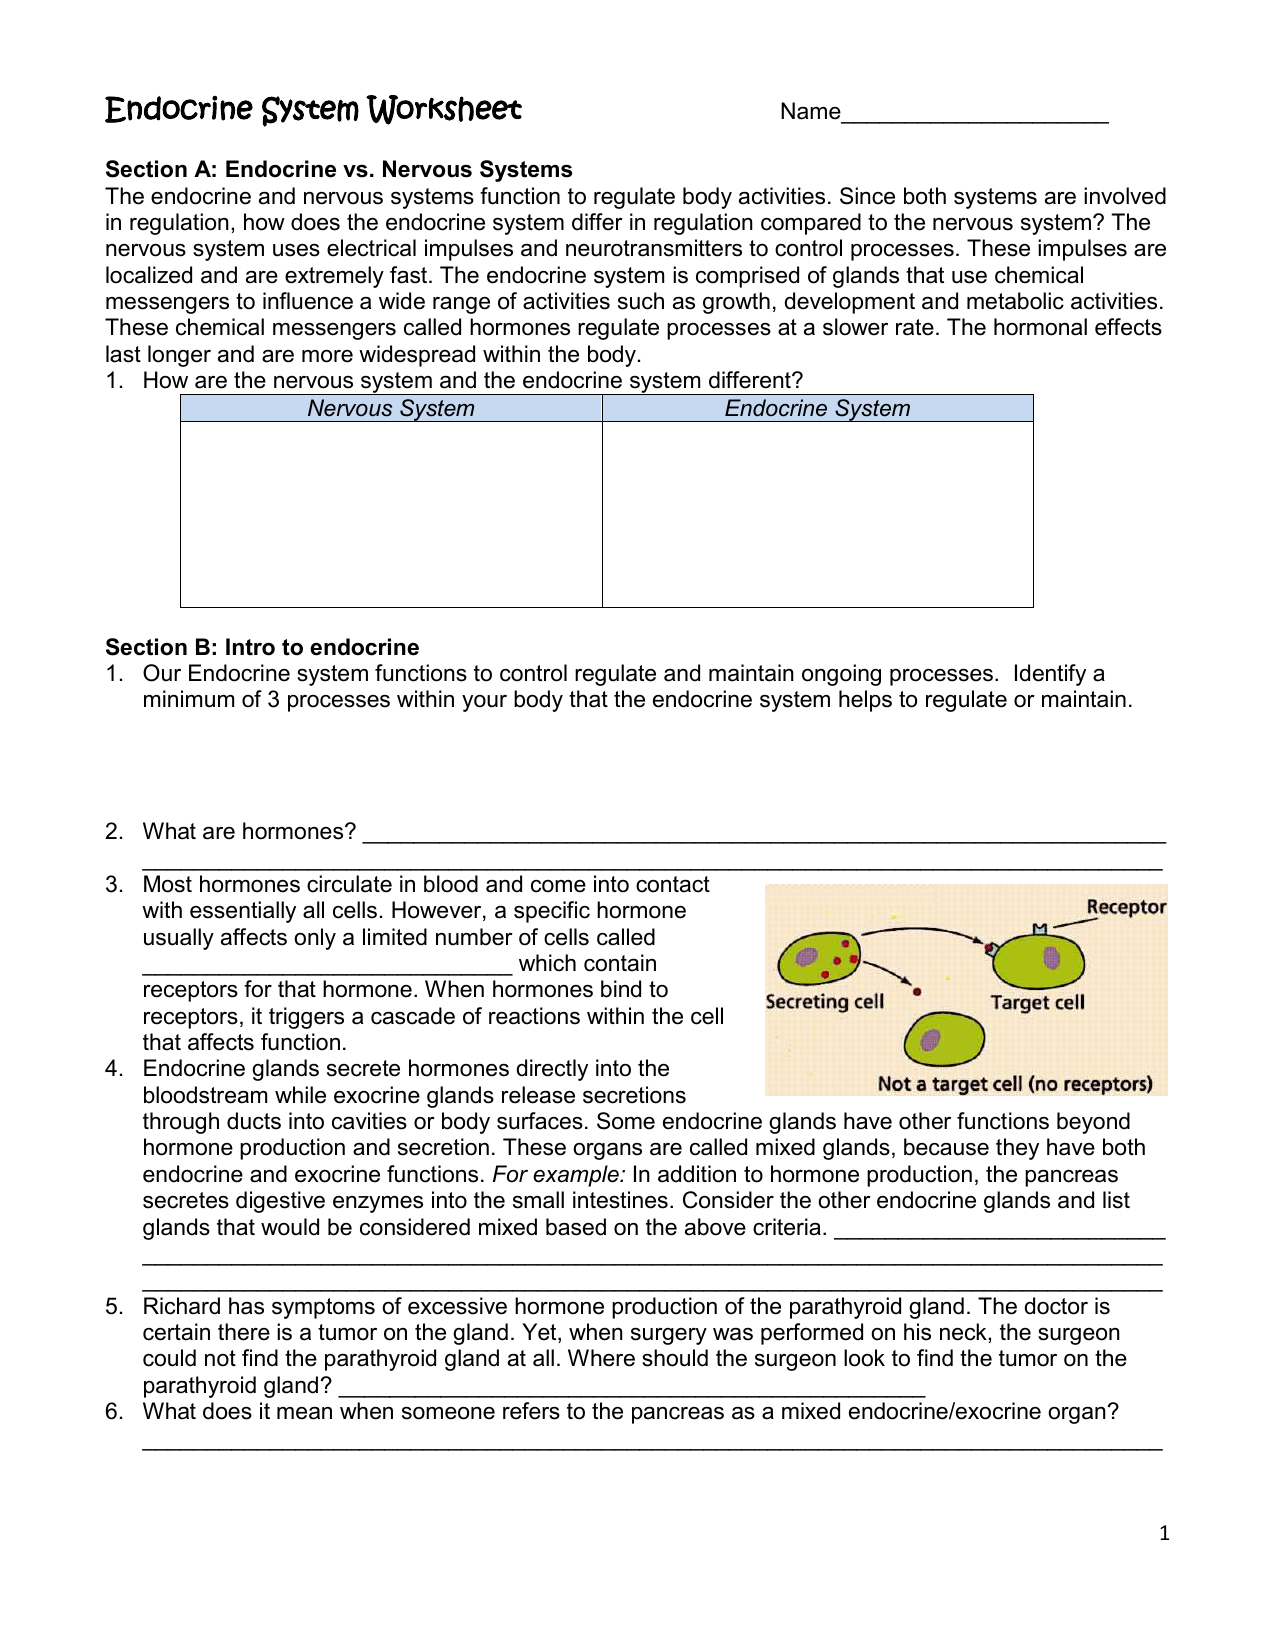 Endocrine System Worksheet